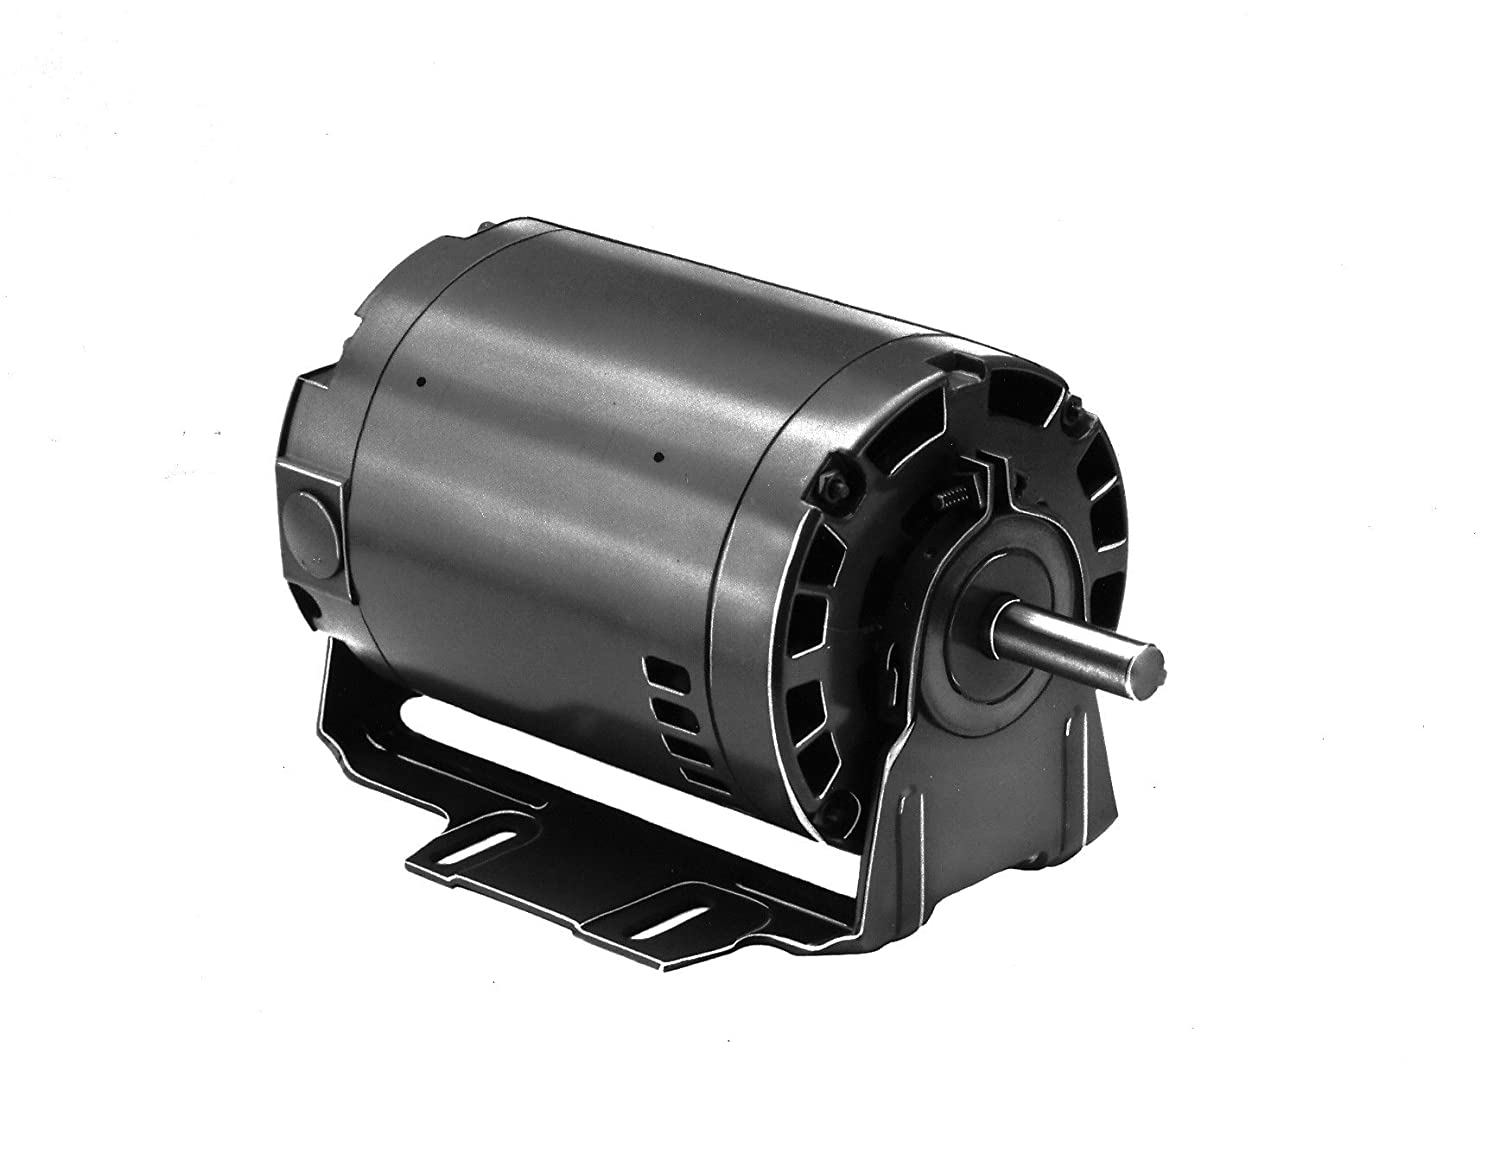 Fasco D6626 Open Drip Proof 3 Phase Frame Motor with Ball Bearing, 3/4HP, 1725RPM, 208-230/460V, 60Hz